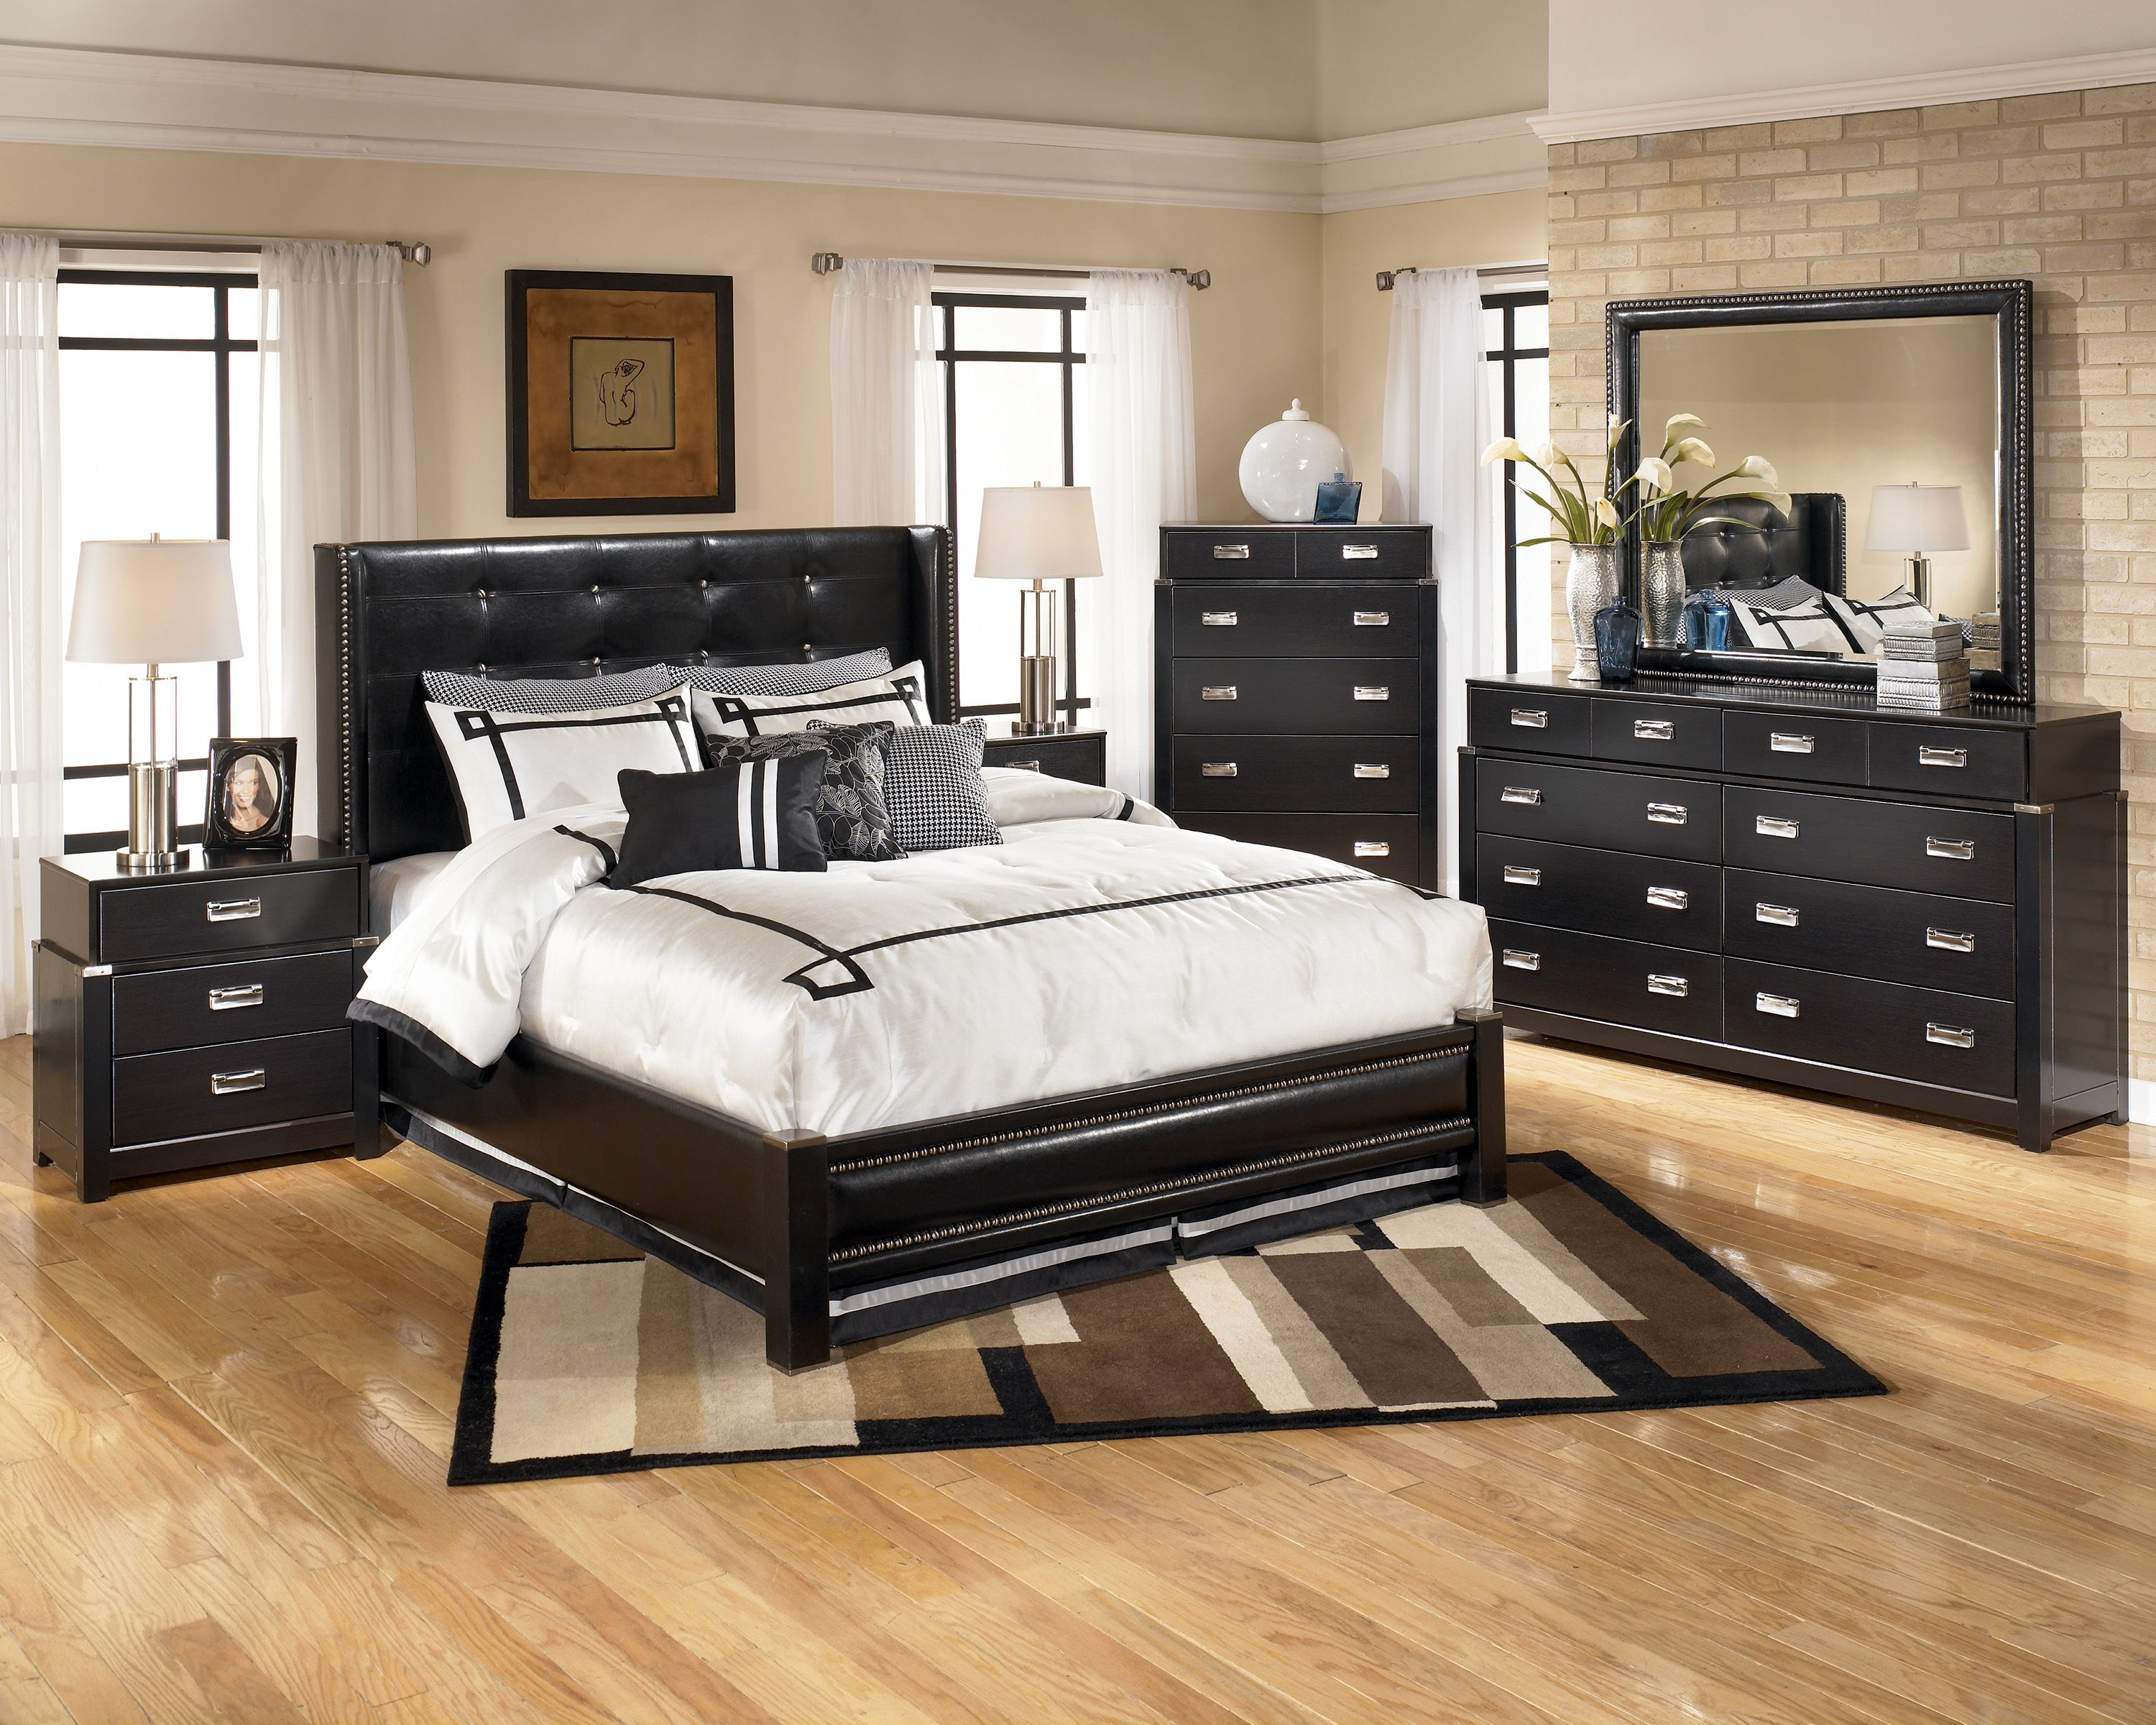 Lovely Nice Inspirational Black Queen Bed Set 53 On Home Remodel Ideas With Black  Queen Bed Set